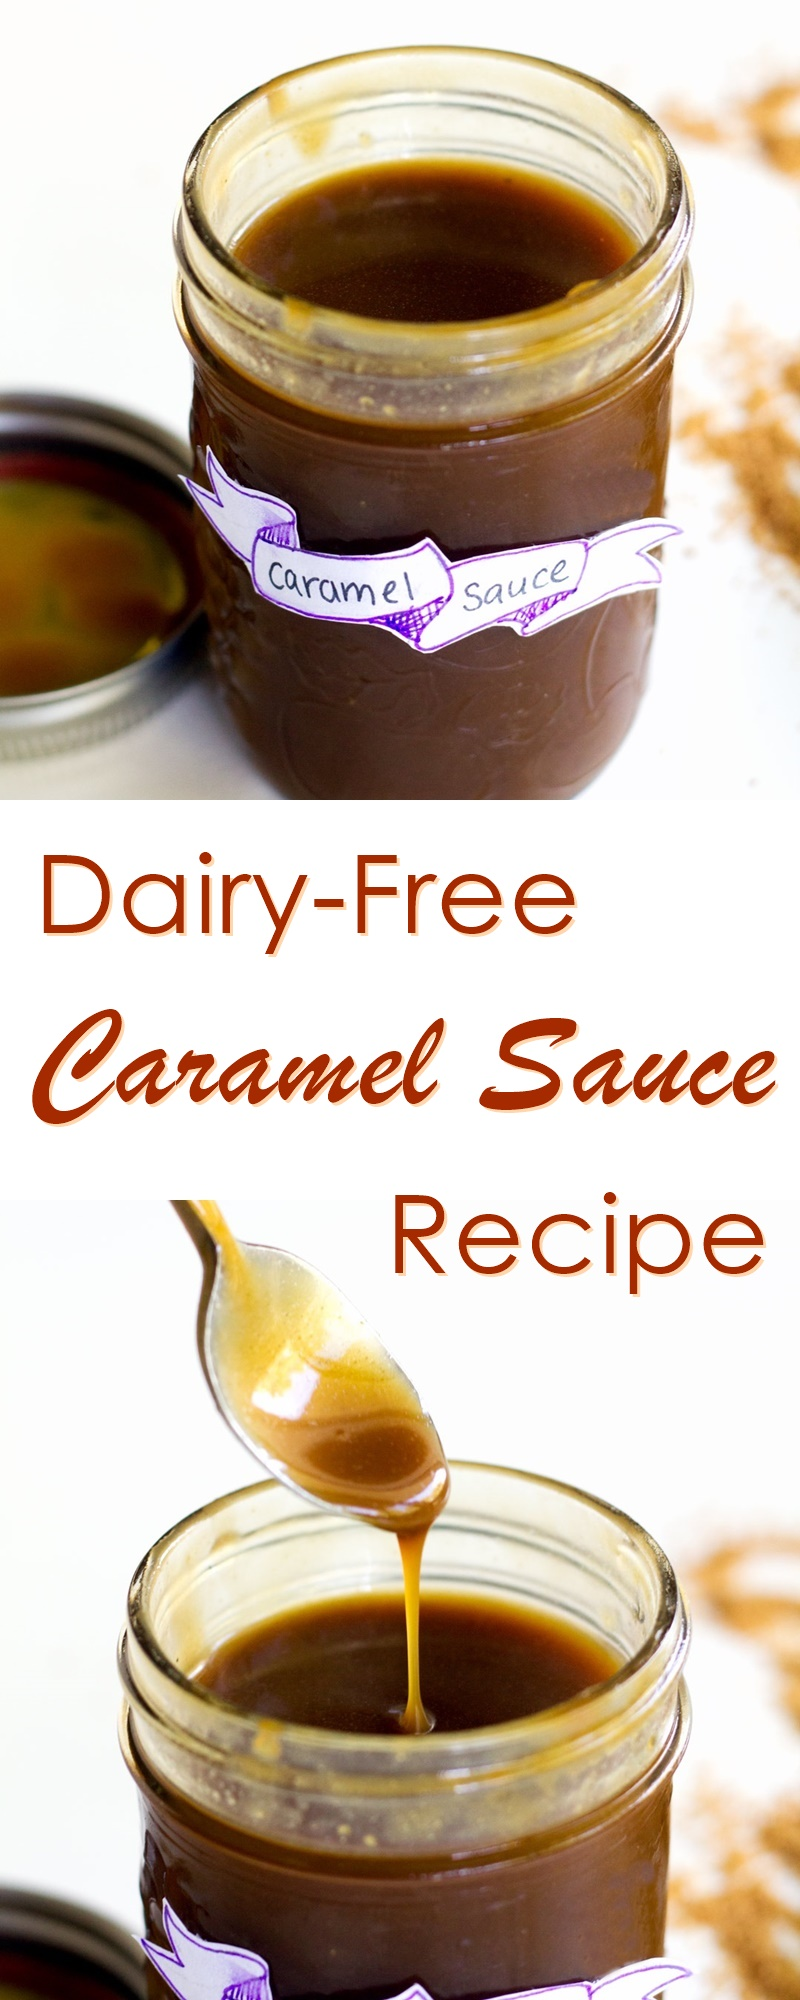 Vegan Caramel Sauce Recipe - dairy-free, gluten-free, soy-free and ready in 10 minutes!